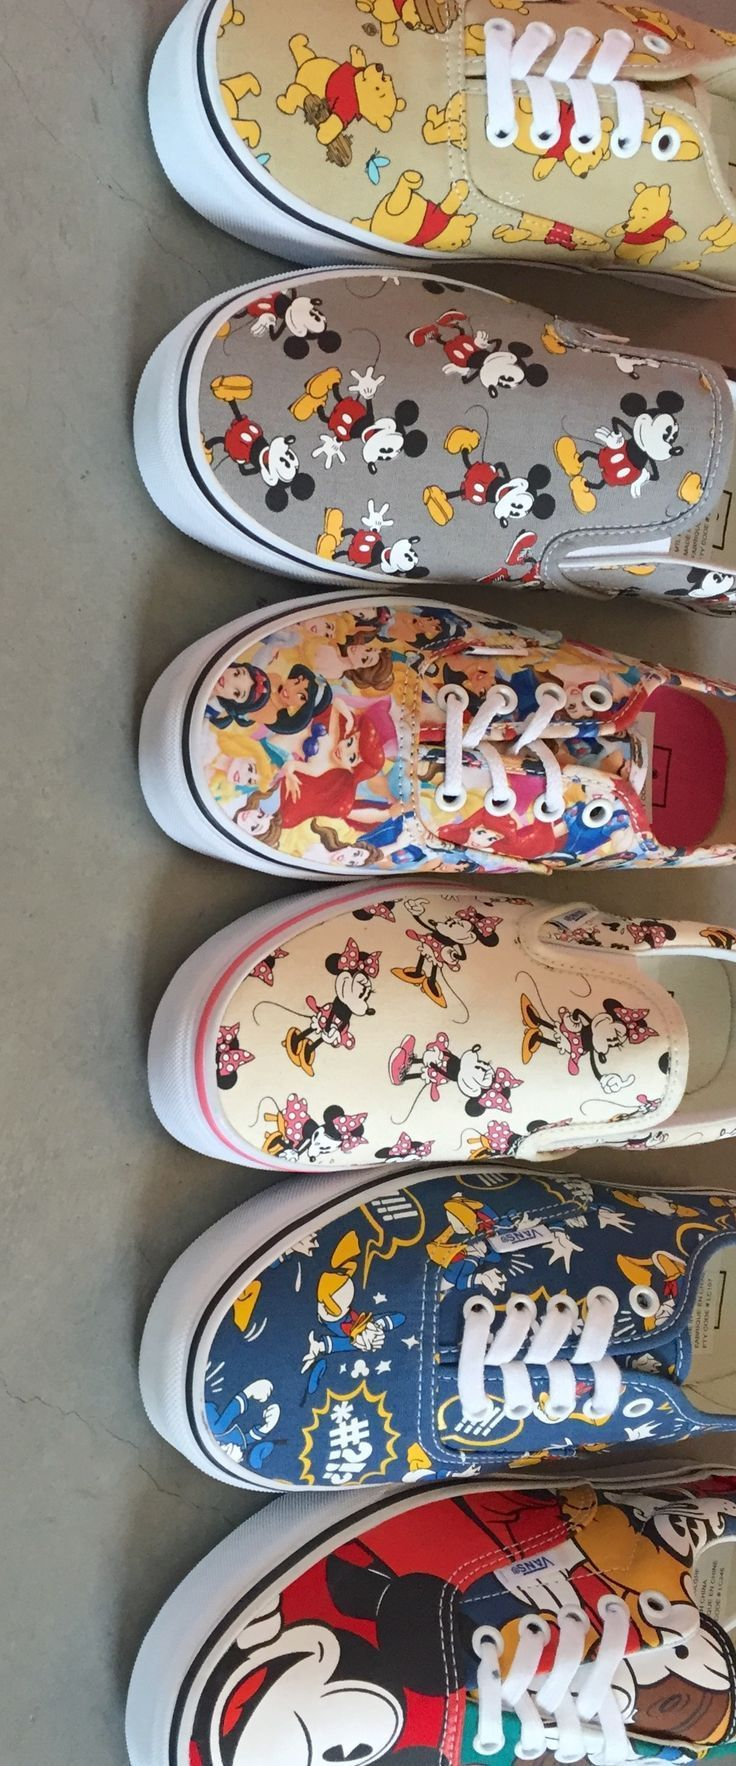 Vans x Disney... Get 'em while you can to go with your Disney Tees:  http://skreened.com/search/disney?sort=popularity